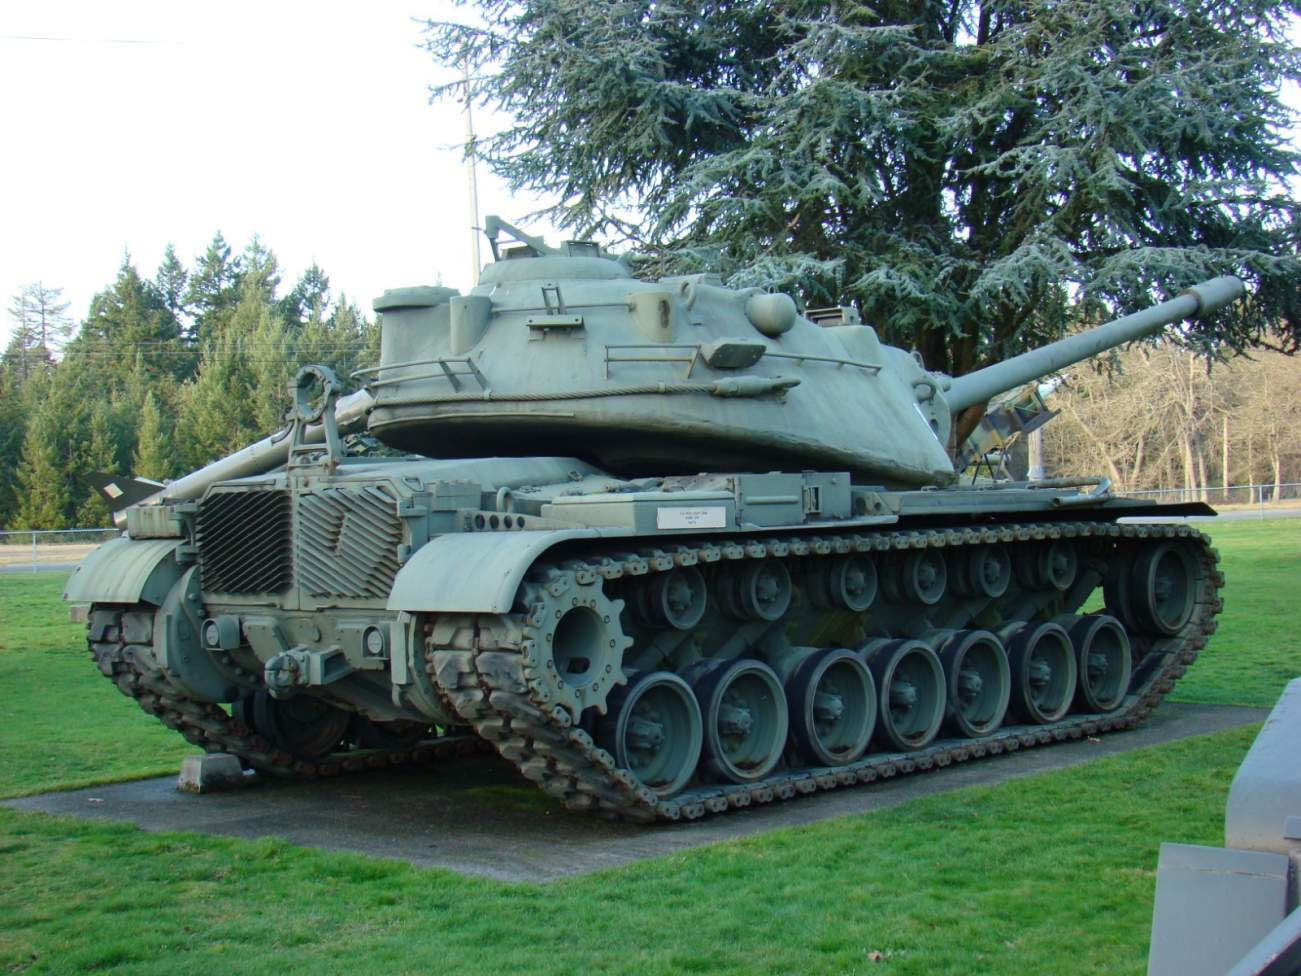 Meet The M103: America's Heavy Tiger Tank That Was Late To World War II